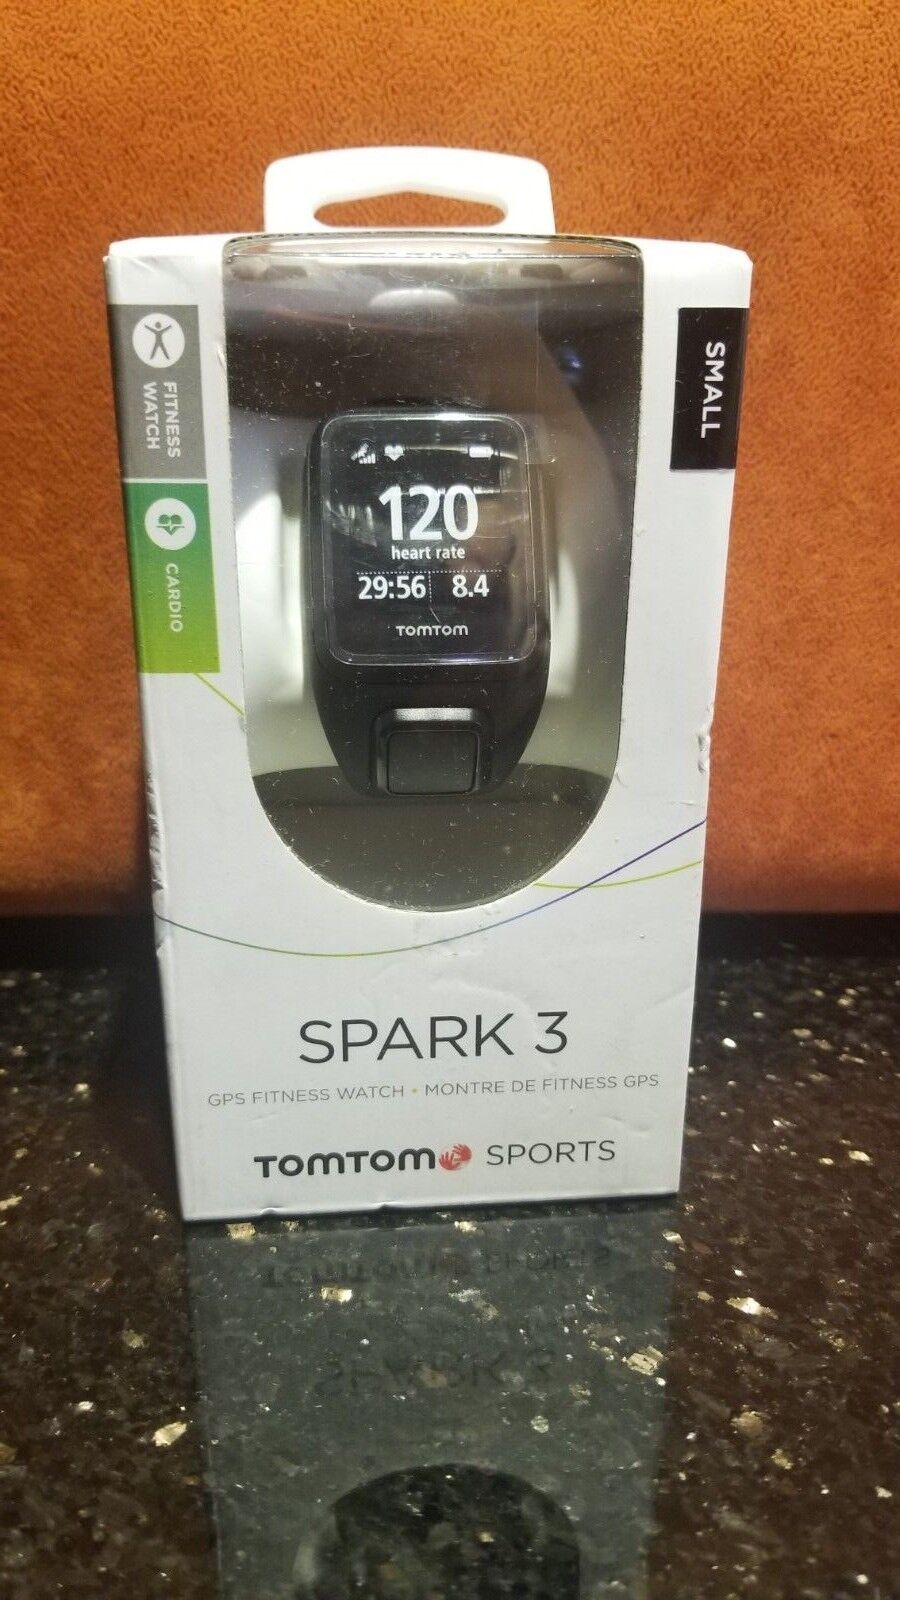 TomTom Spark 3 Multi Sport Rate GPS Fitness Watch with Heart Rate Sport Monitor - Small Str acb920